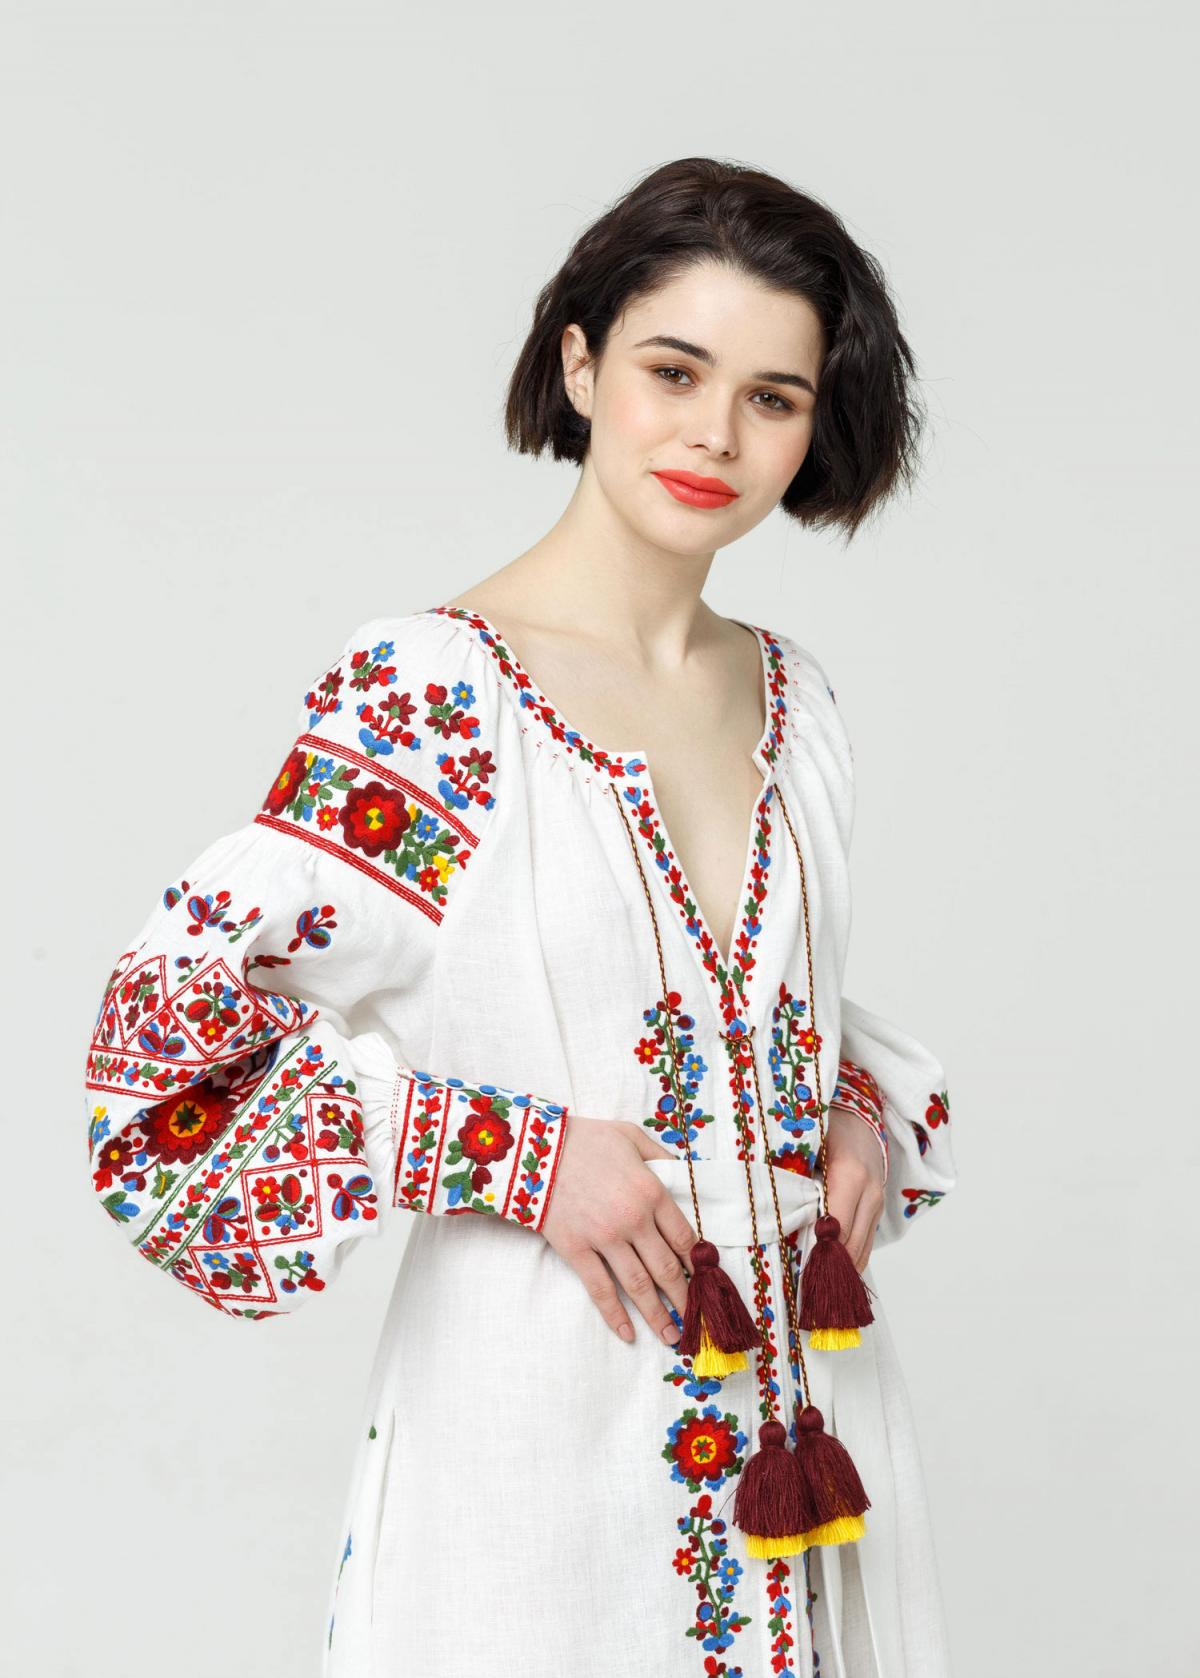 Long white embroidered dress with embroidery flowers,  Limited Edition. Photo №7. | Narodnyi dim Ukraine